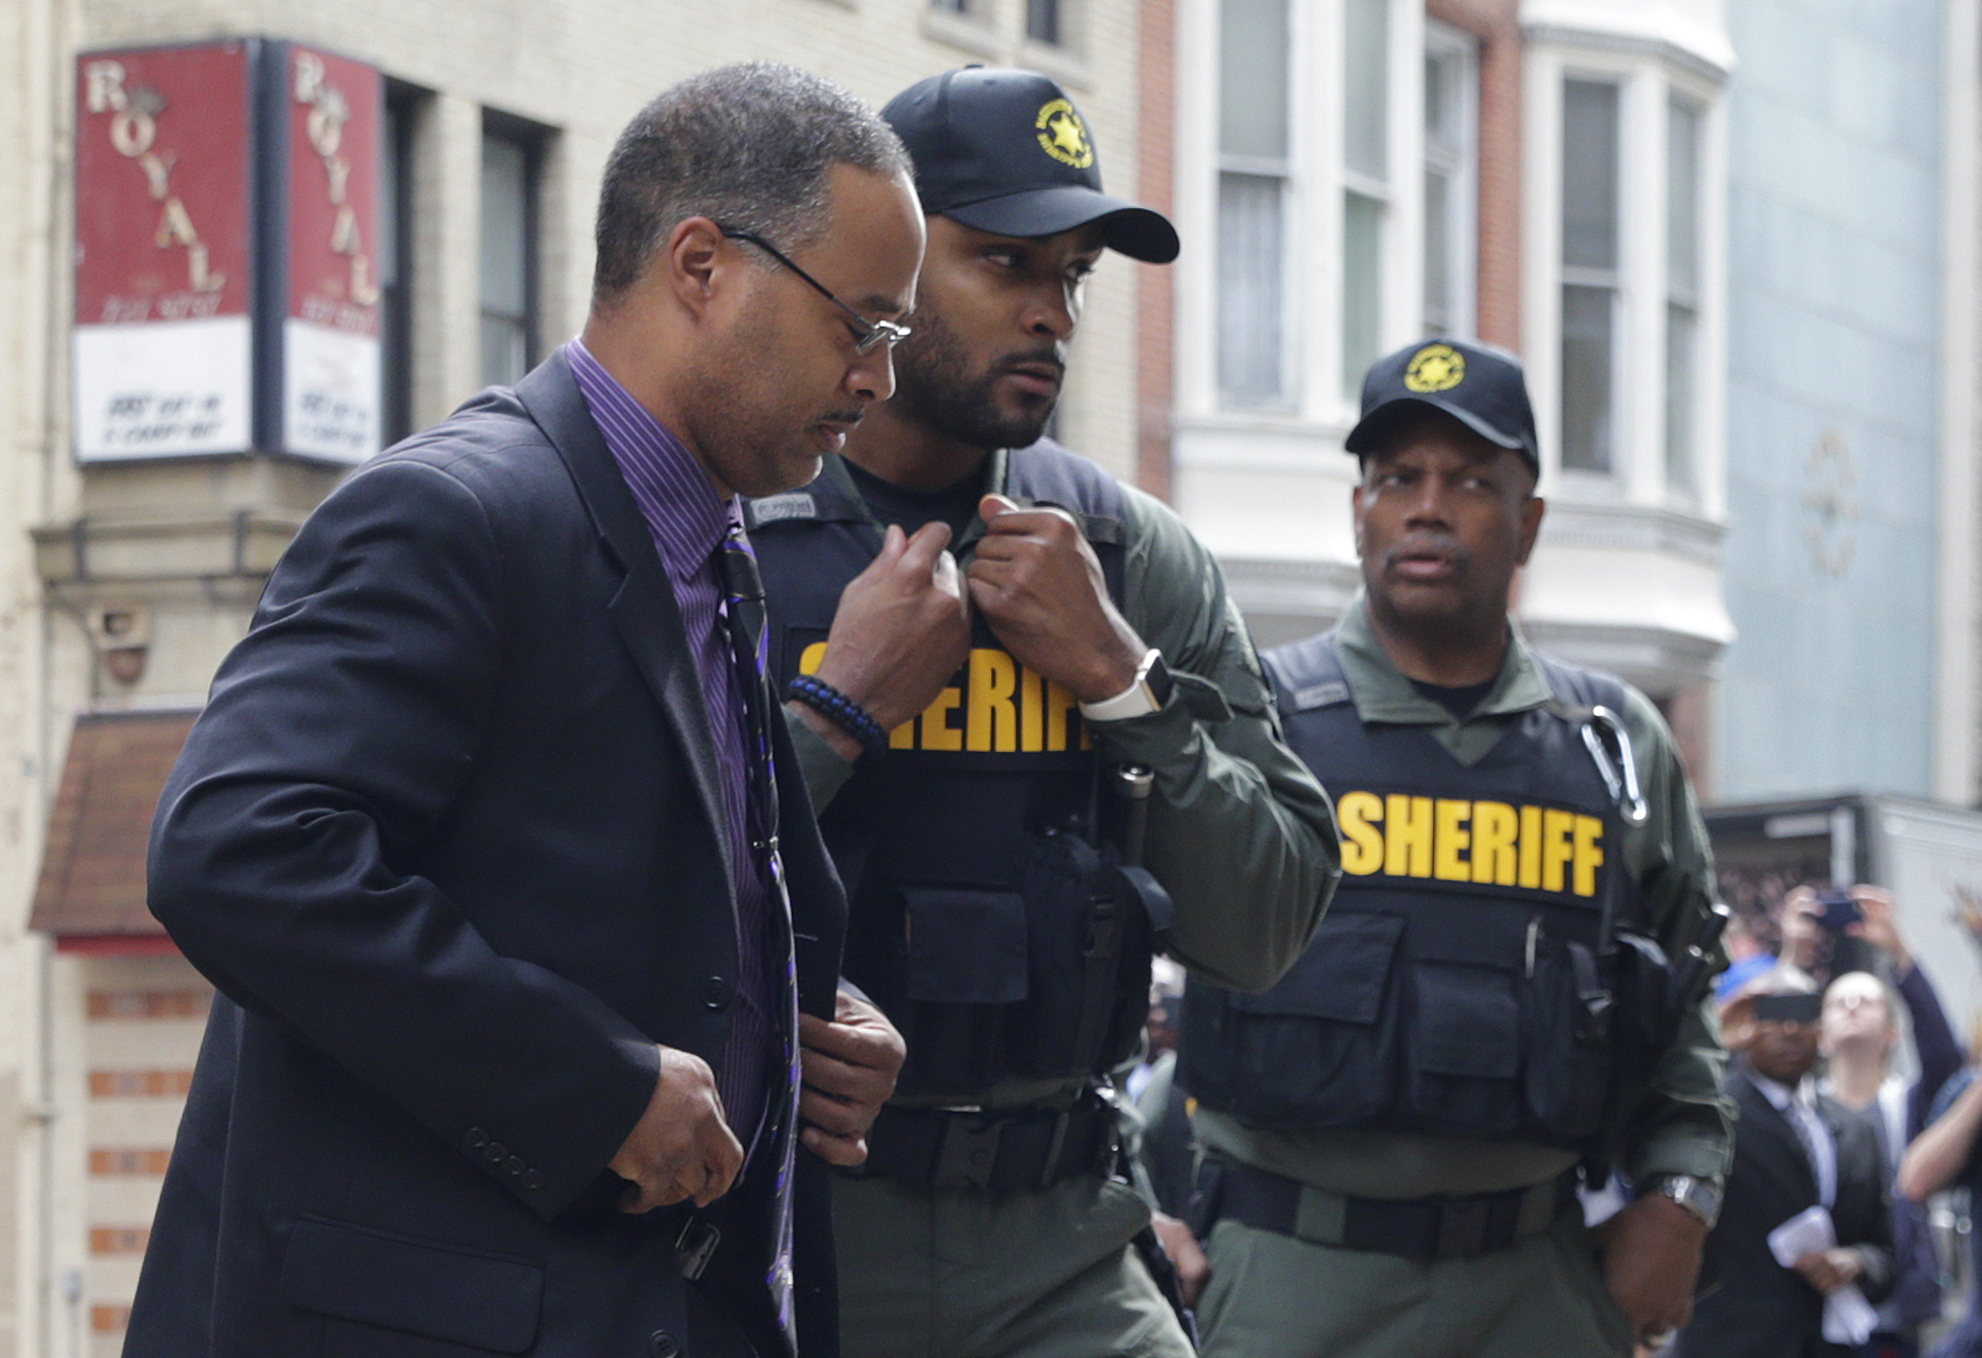 Officer Caesar Goodson, left, one of six Baltimore city police officers charged in connection to the death of Freddie Gray, arrives at a courthouse before receiving a verdict in his trial in Baltimore,  June 23, 2016.